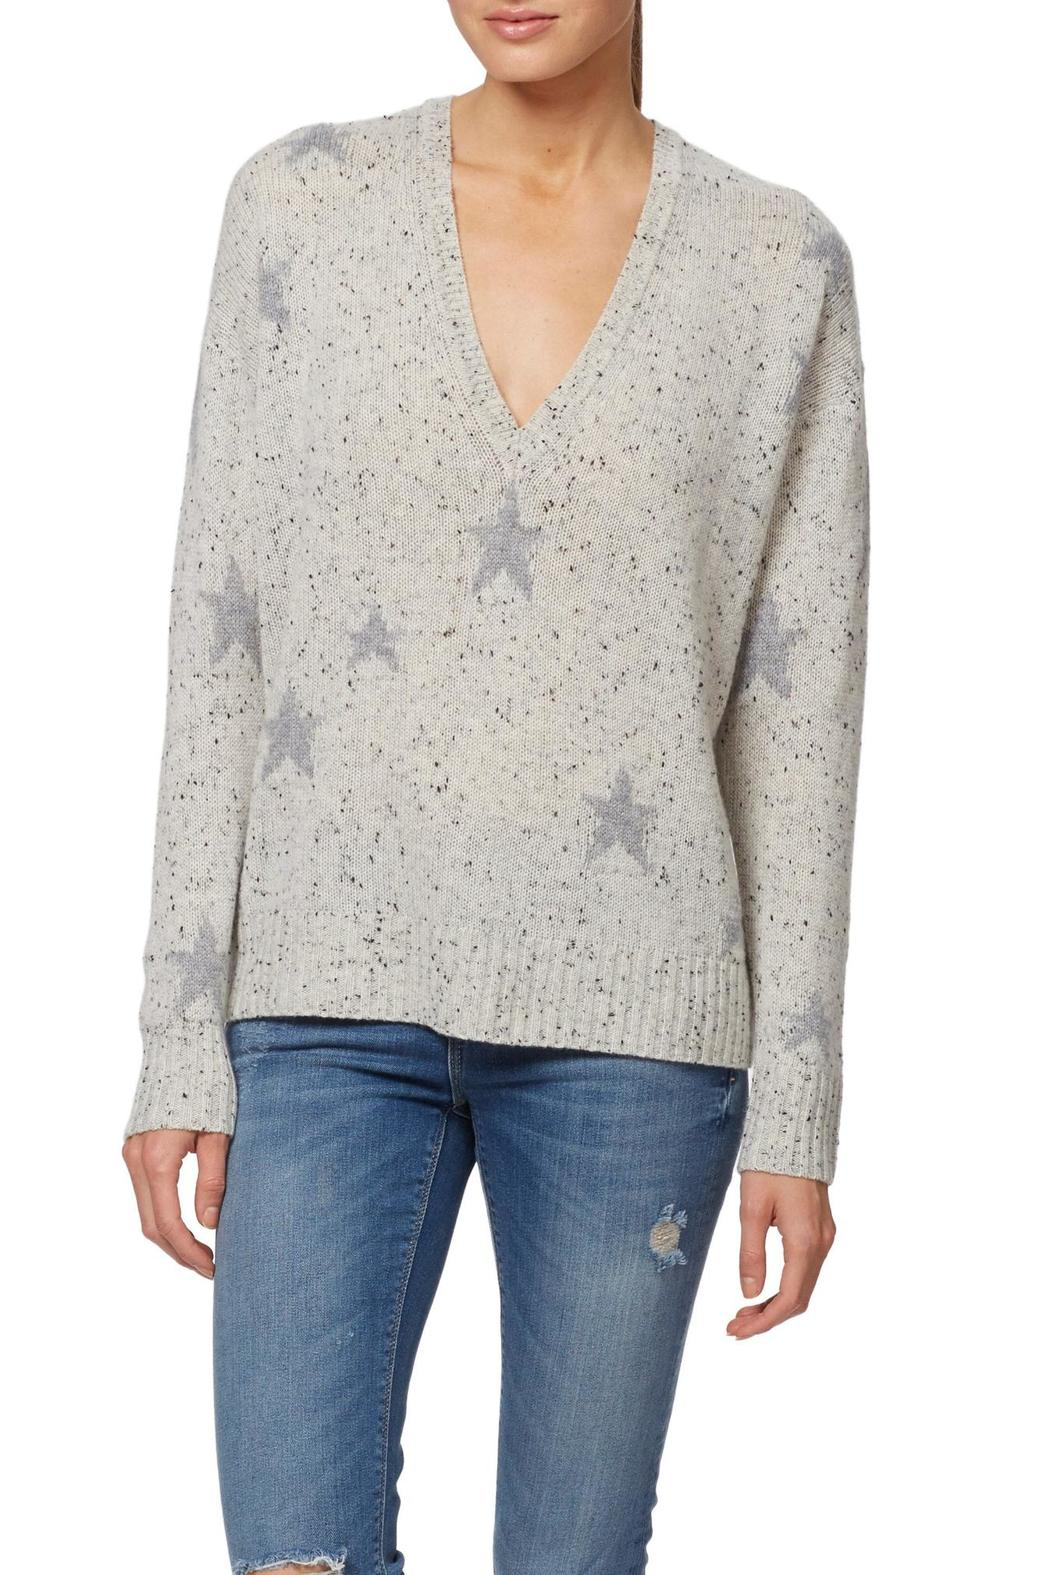 1ae0281f98 360 Cashmere Star V-Neck Cashmere Sweater from Massachusetts by ...